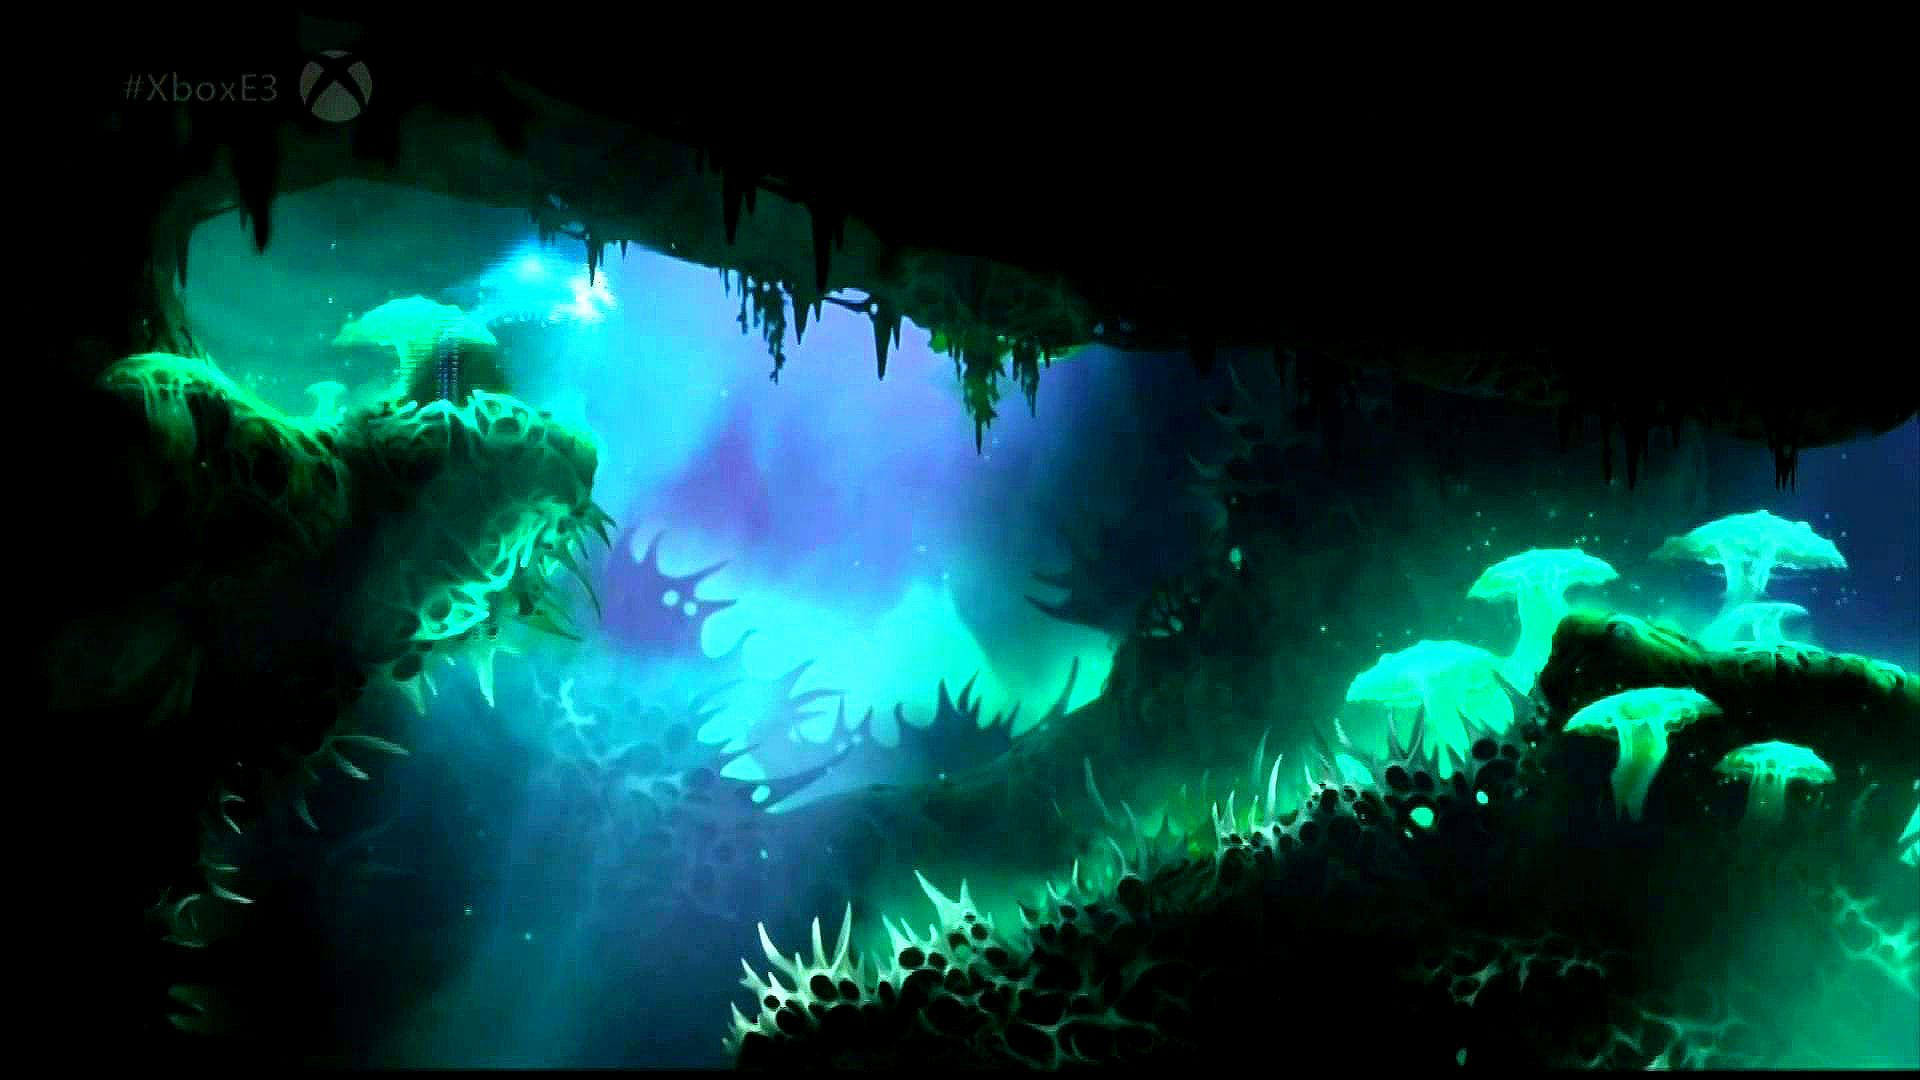 ori and the blind forest wallpapers high quality | download free